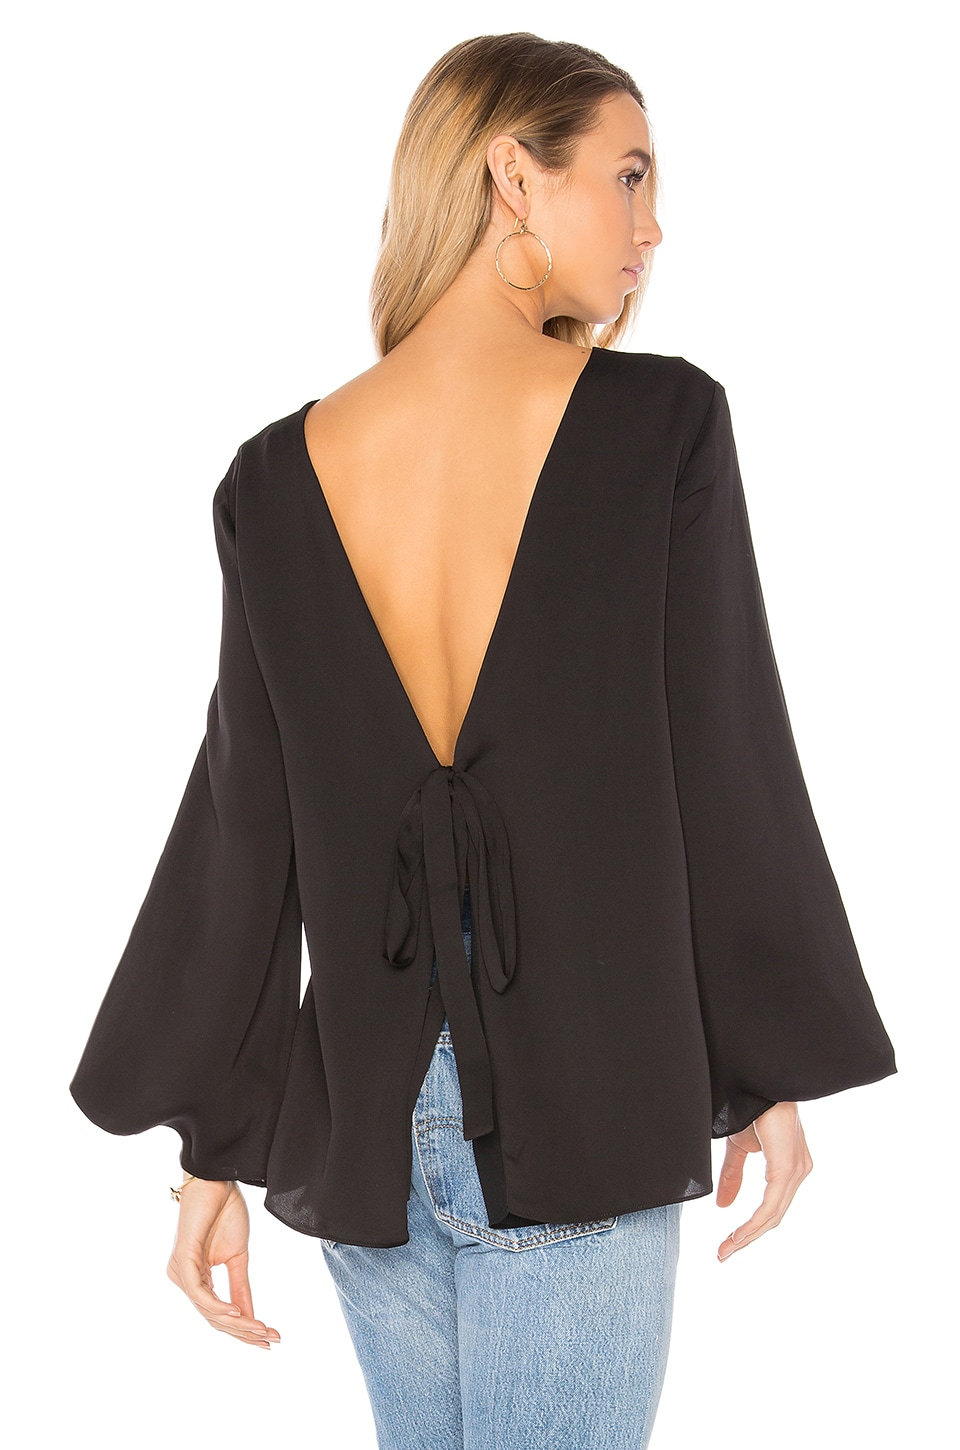 Deep V Back Top by Halston Heritage